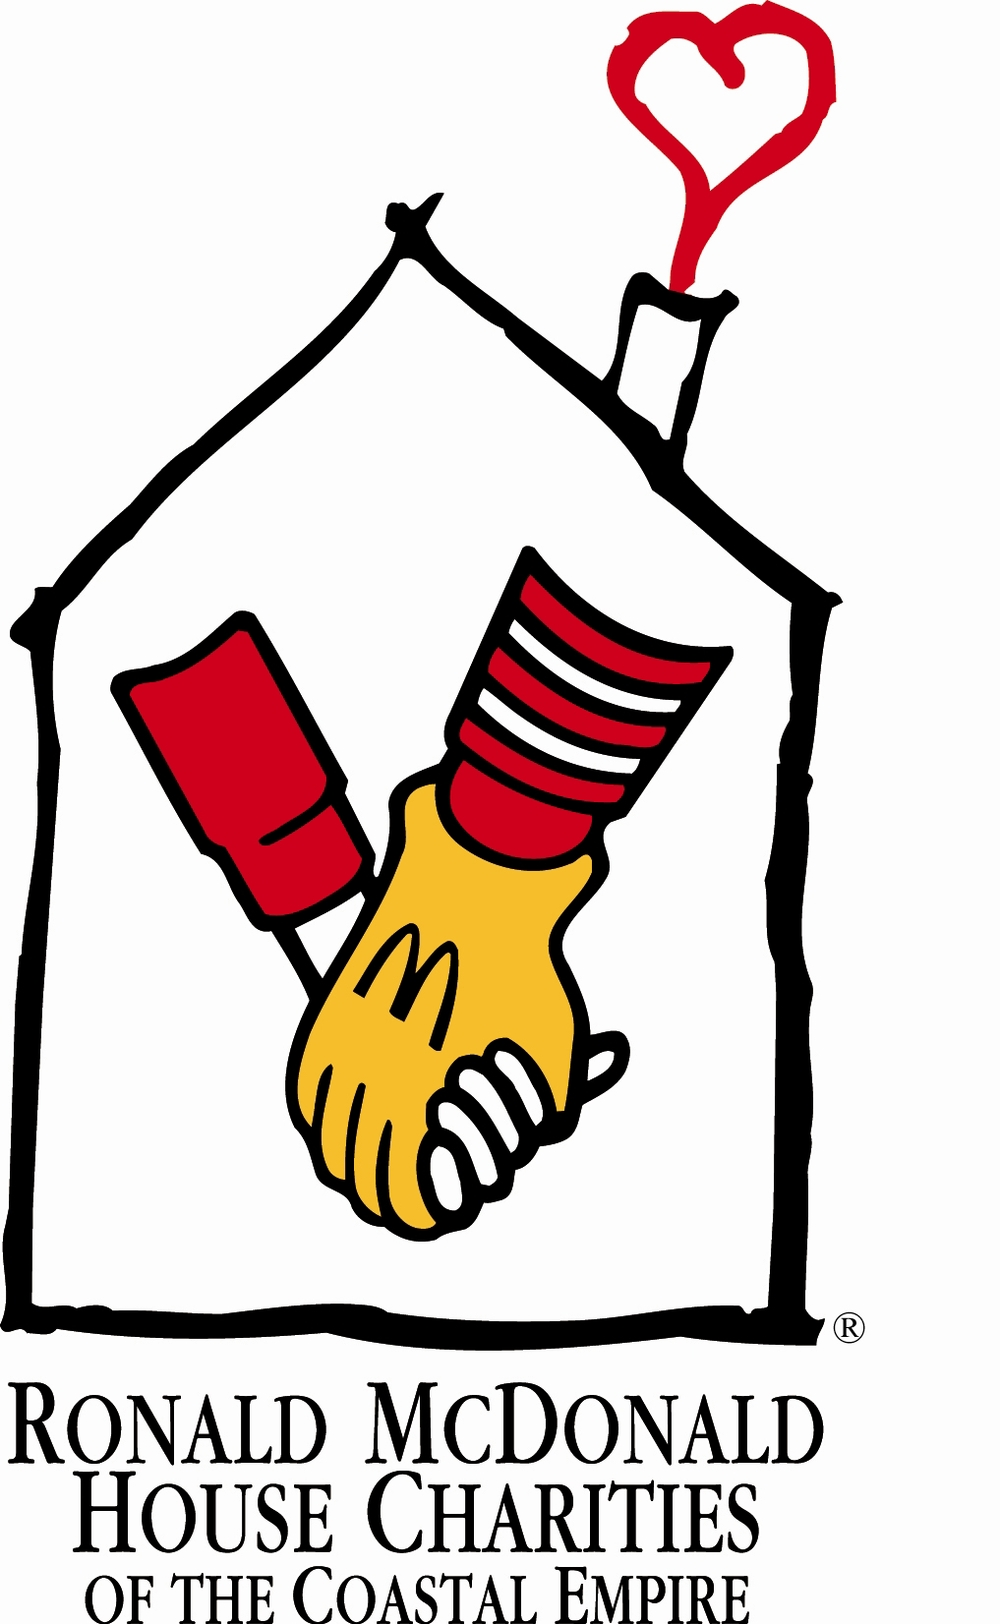 Ronald McDonald House Charities of the Coastal Empire